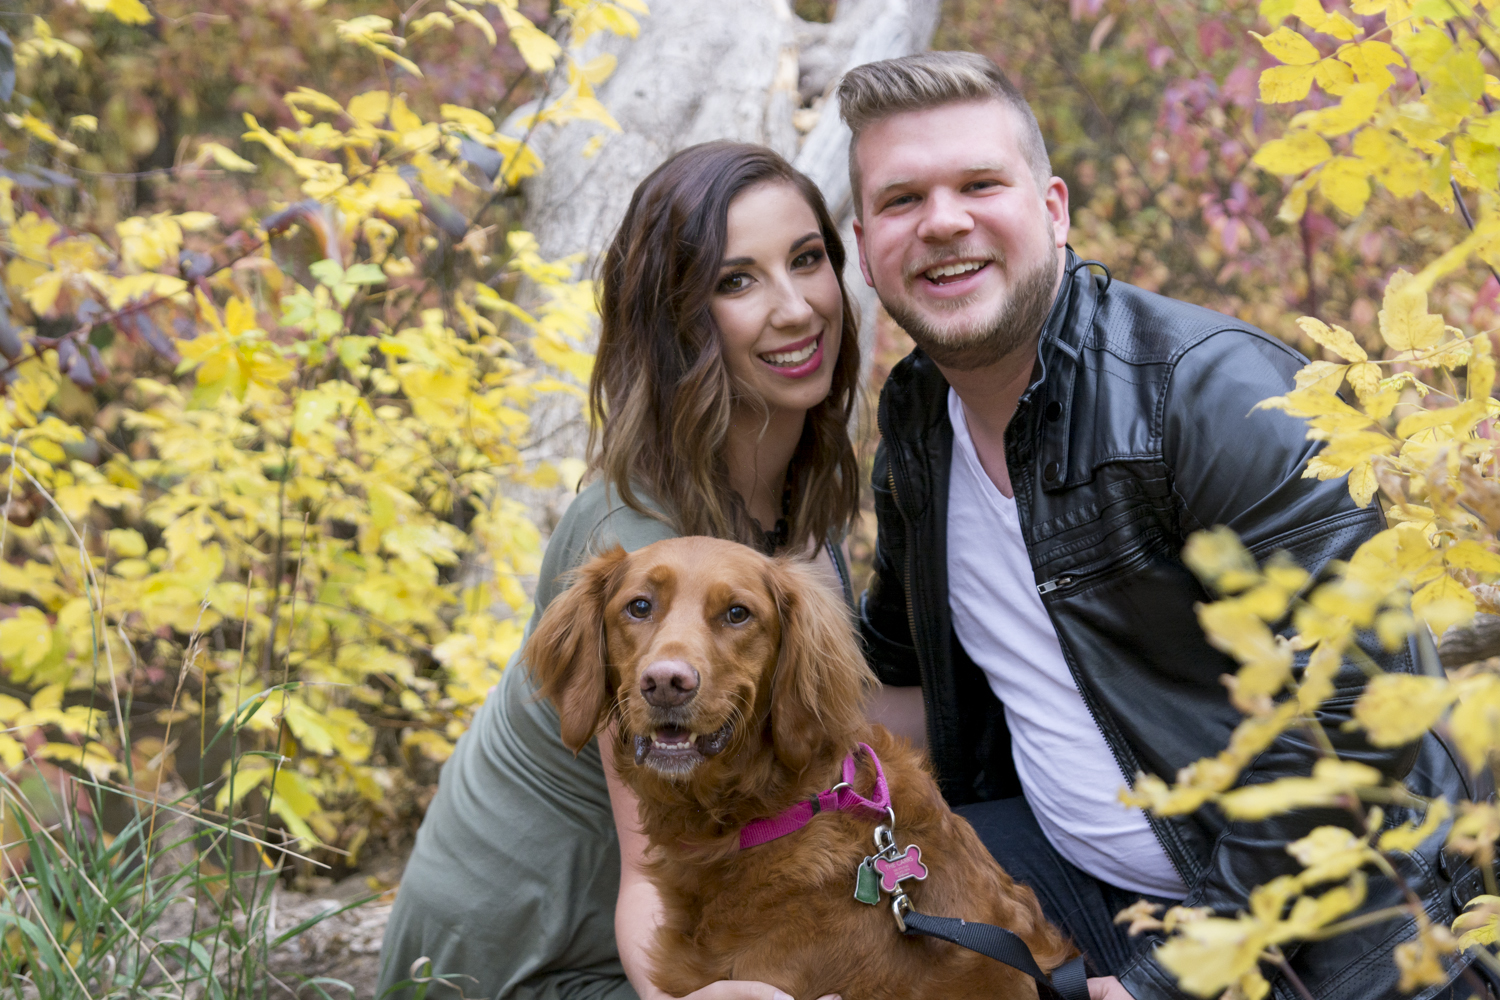 Hey There, Chelsie fall family portraits by Whitney Majors Photography. Beautiful autumn family portrait poses and styling // Hey There, Chelsie